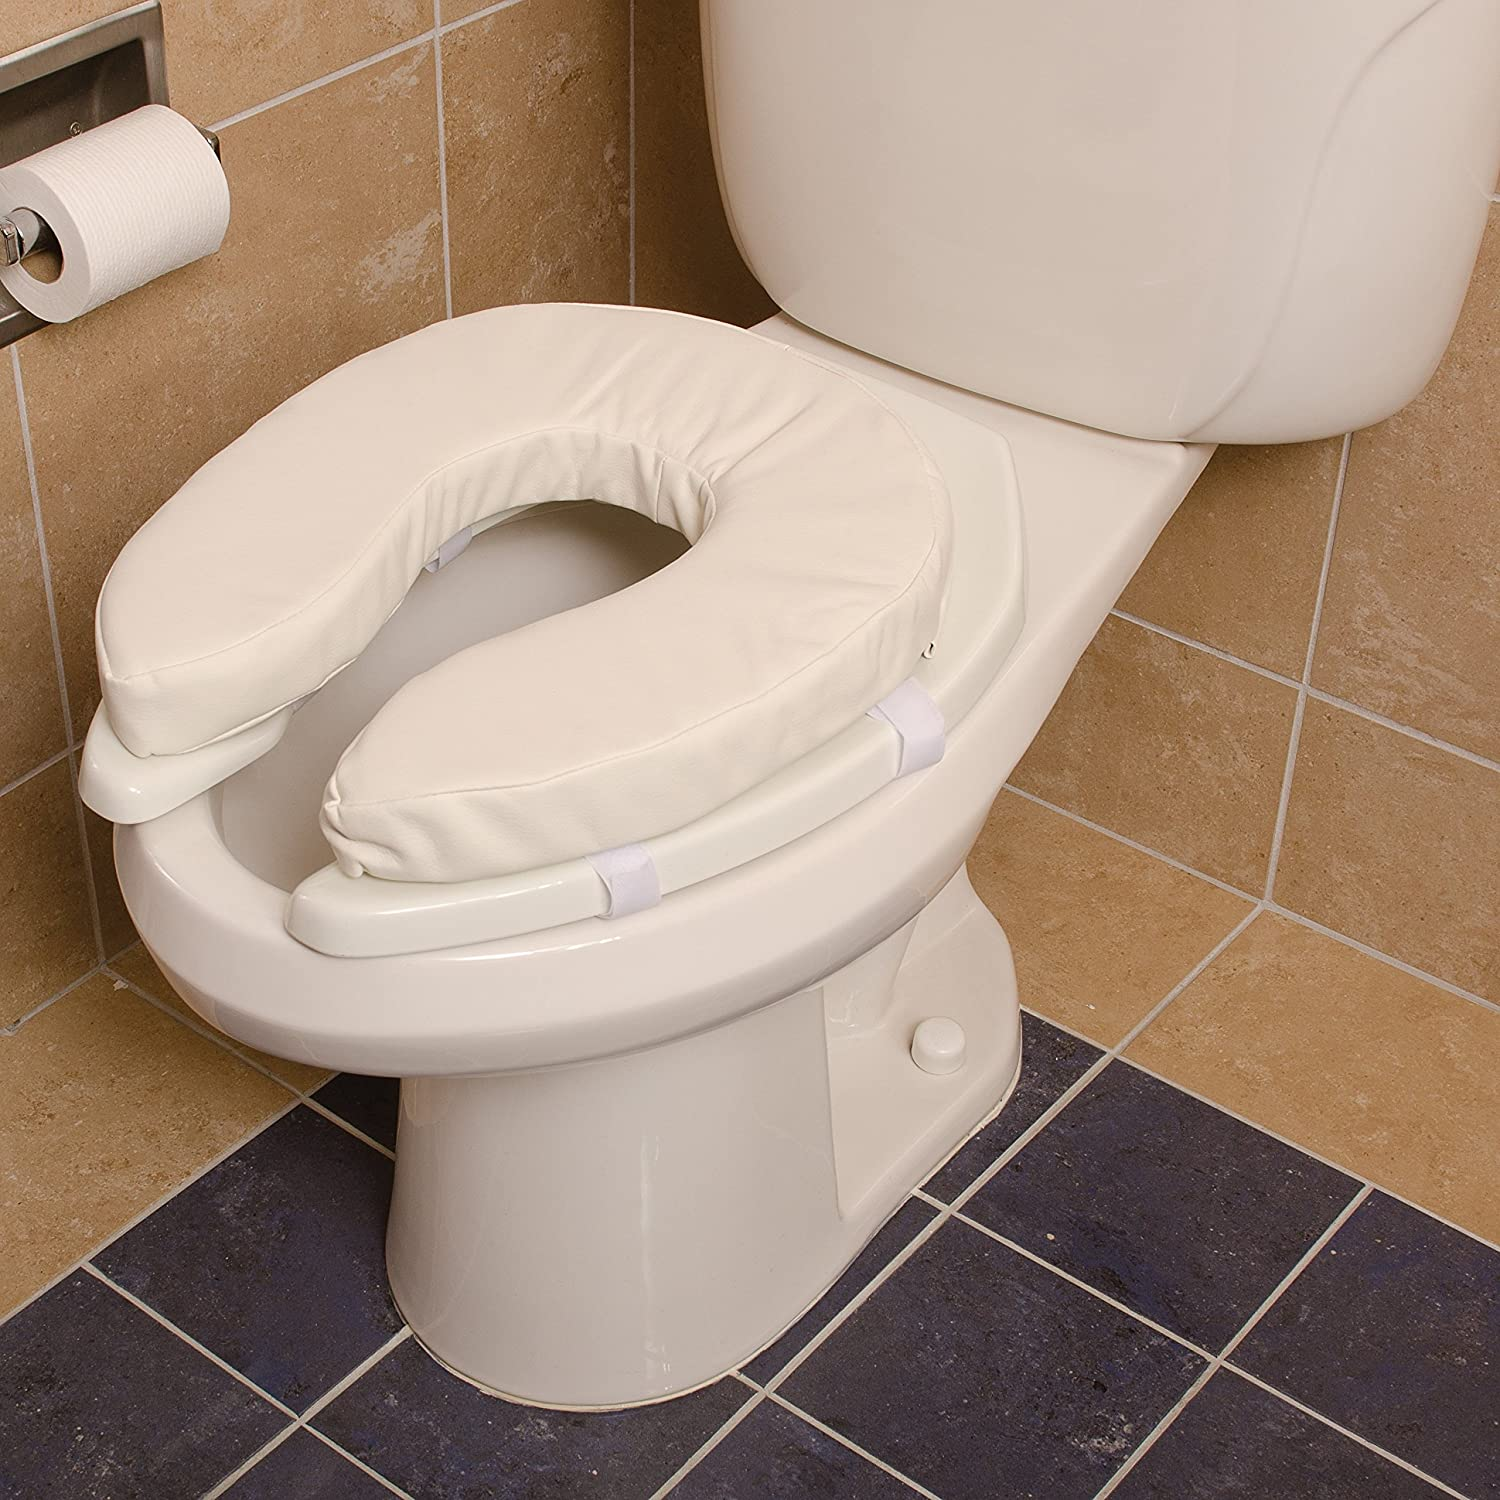 Padding for the Toilet Seat